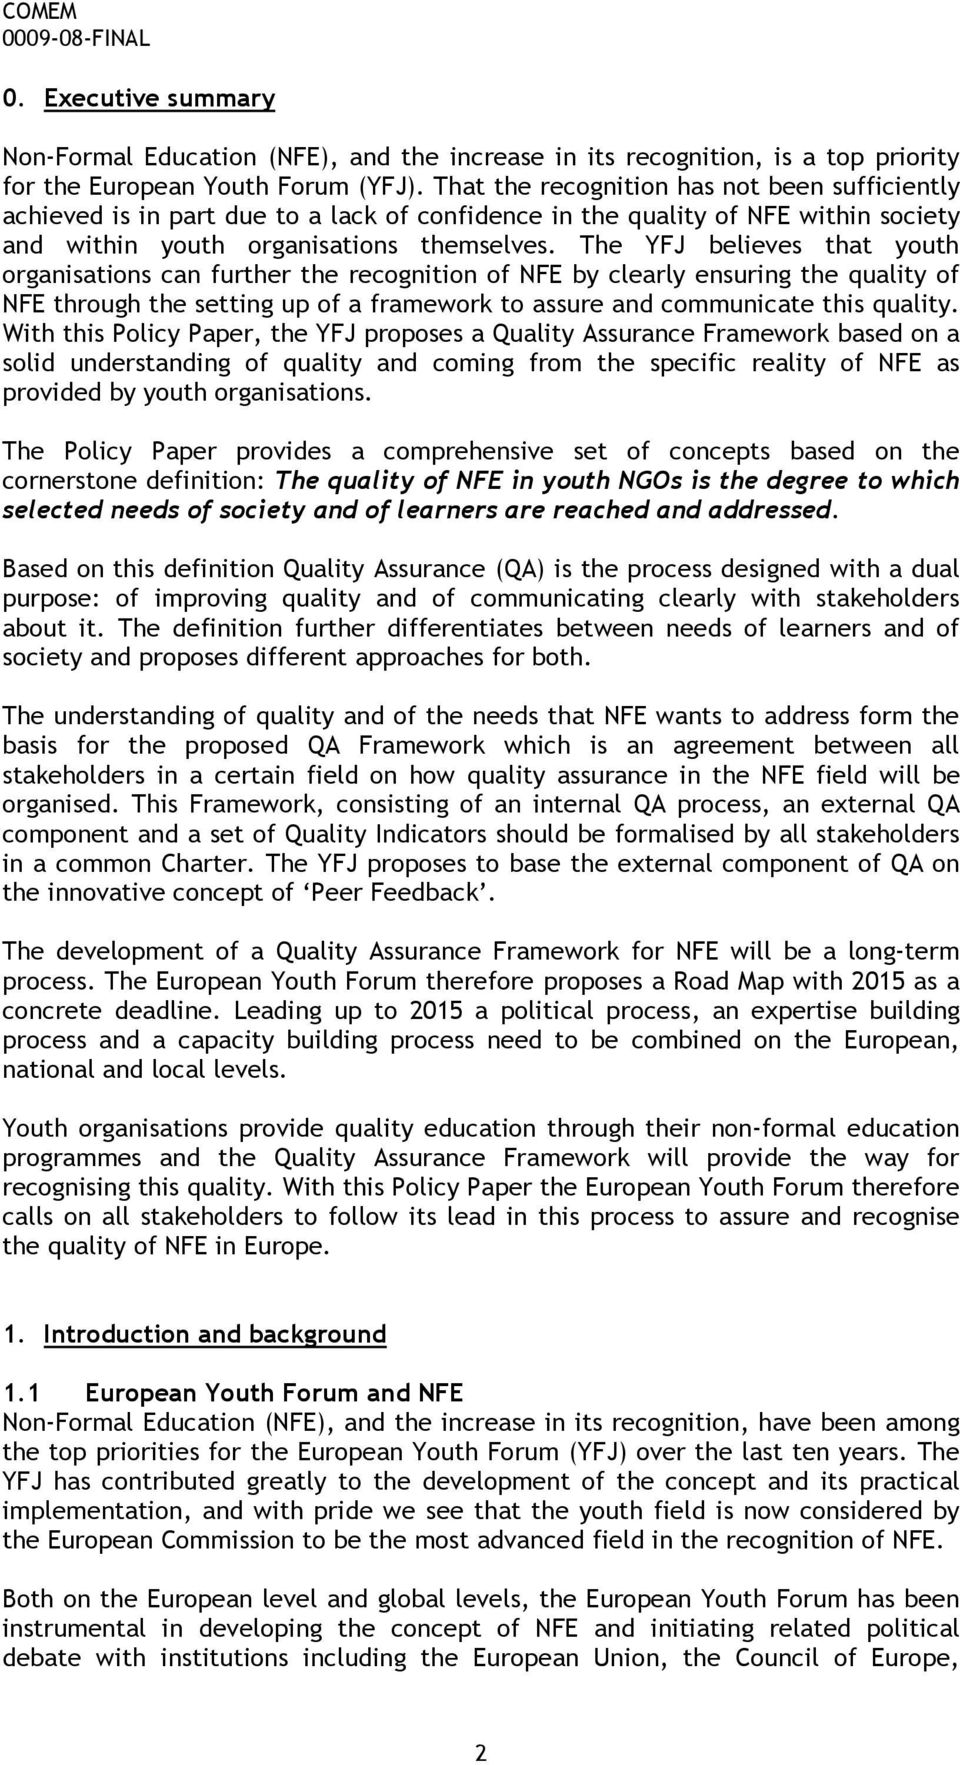 The YFJ believes that youth organisations can further the recognition of NFE by clearly ensuring the quality of NFE through the setting up of a framework to assure and communicate this quality.